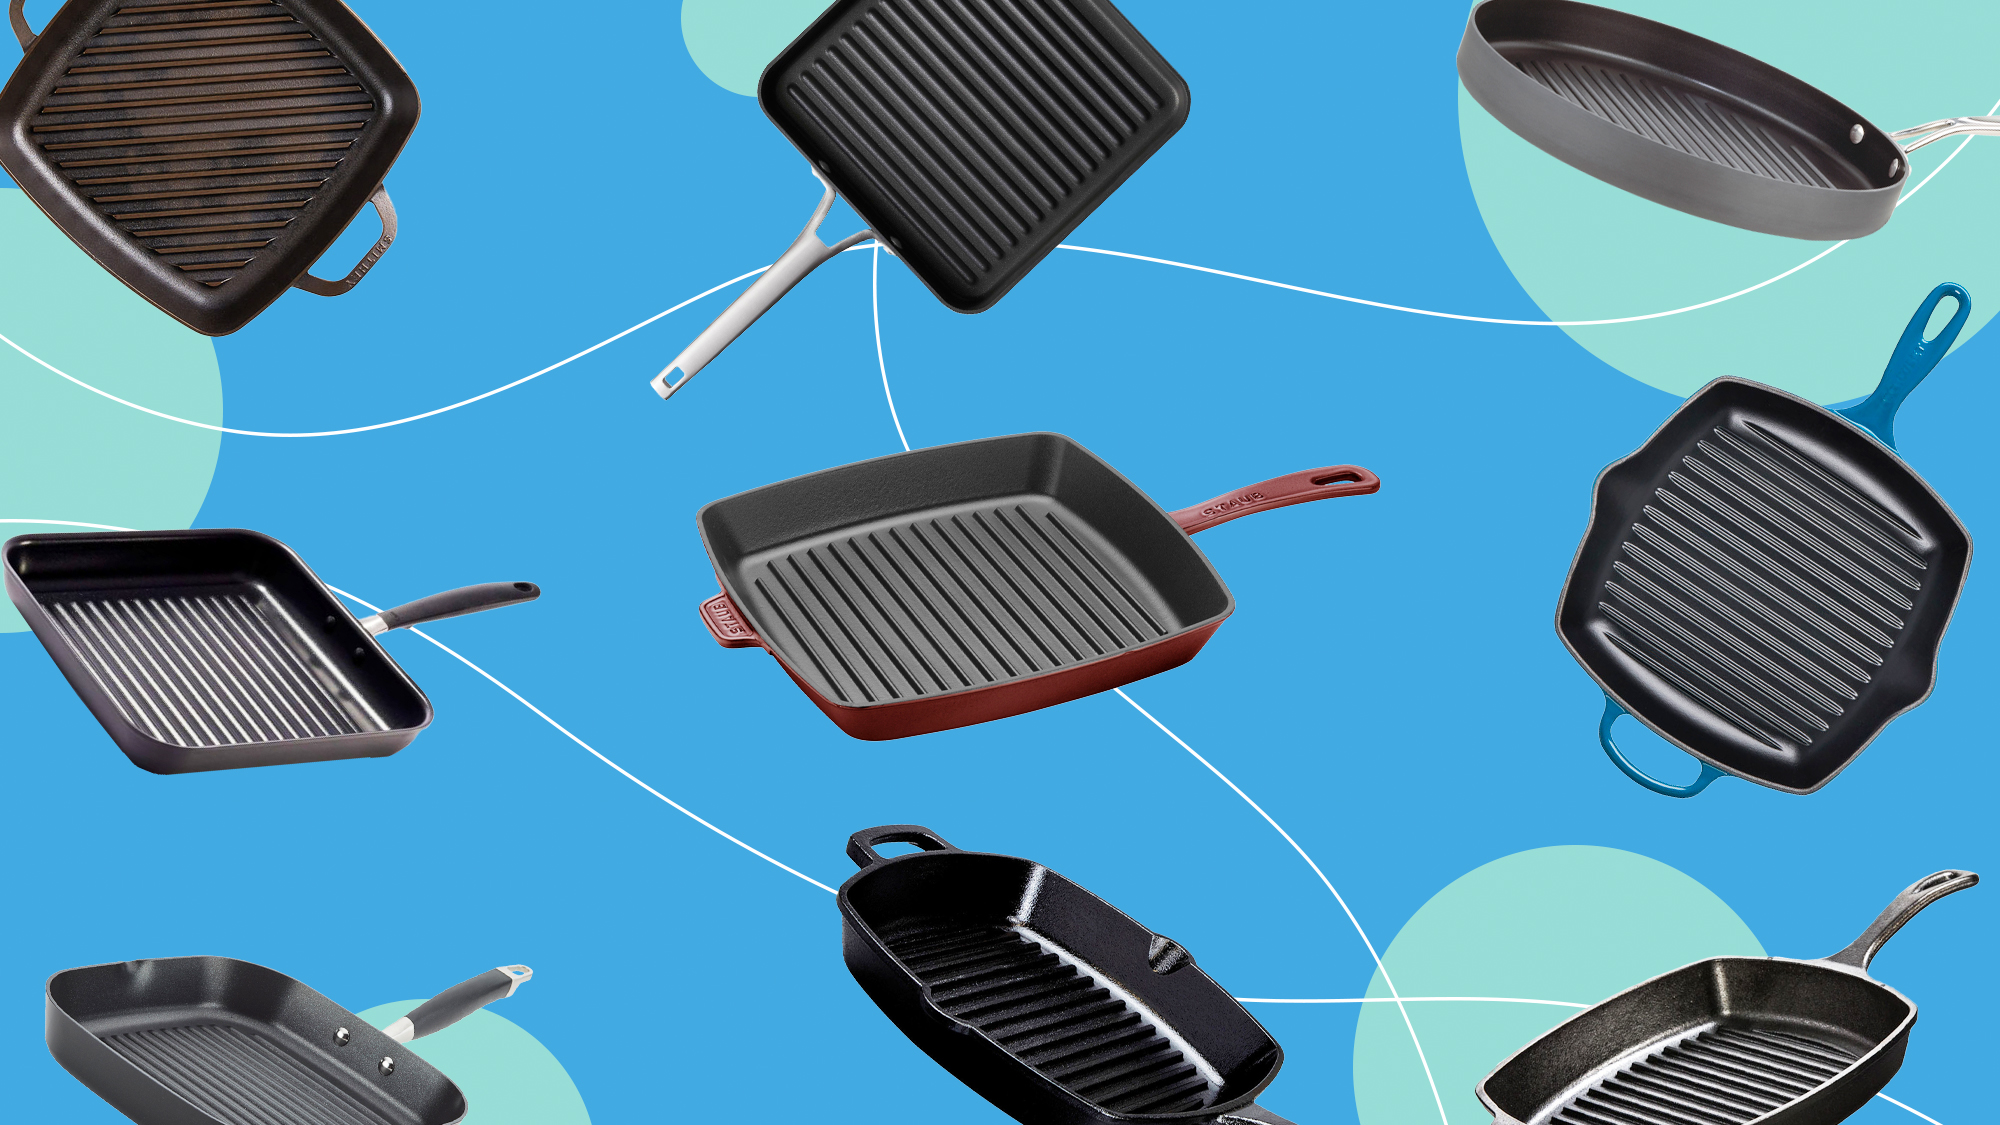 9 grill pans on a designed background